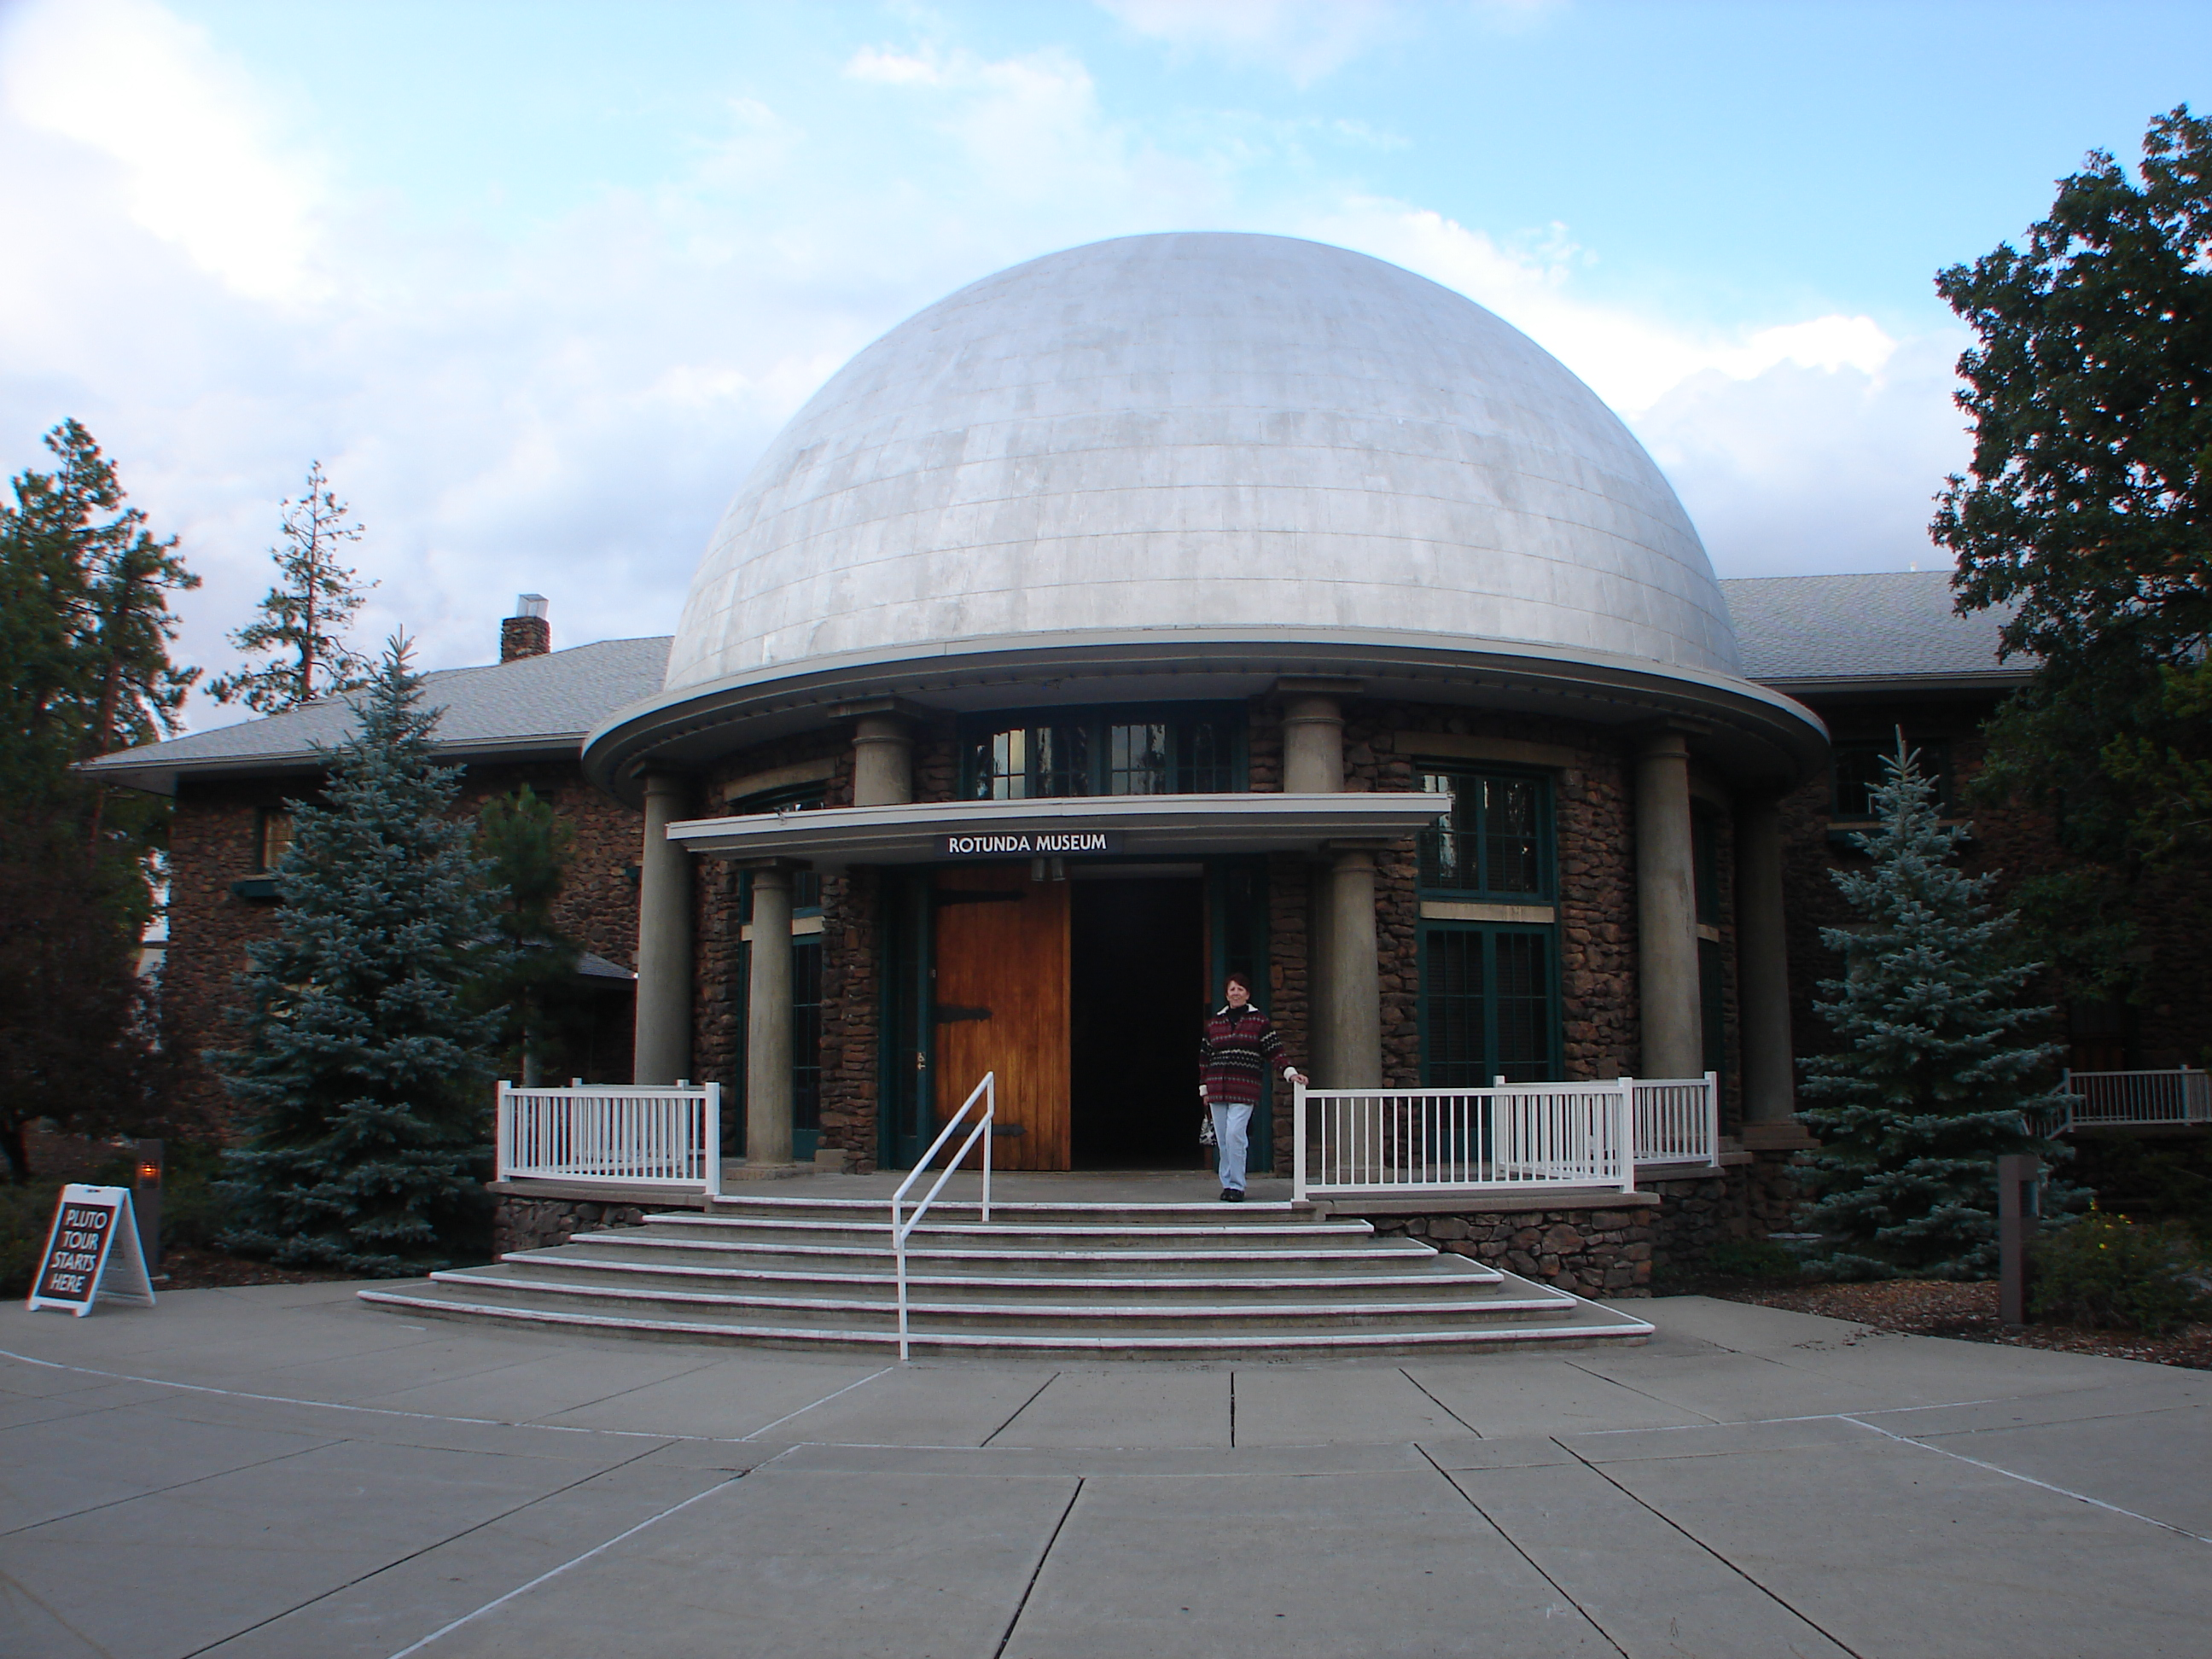 Miracle of America Museum Flathead Lake, Lowell Observatory Flagstaff, Arizona. Hikes, Travels, & Tours ...